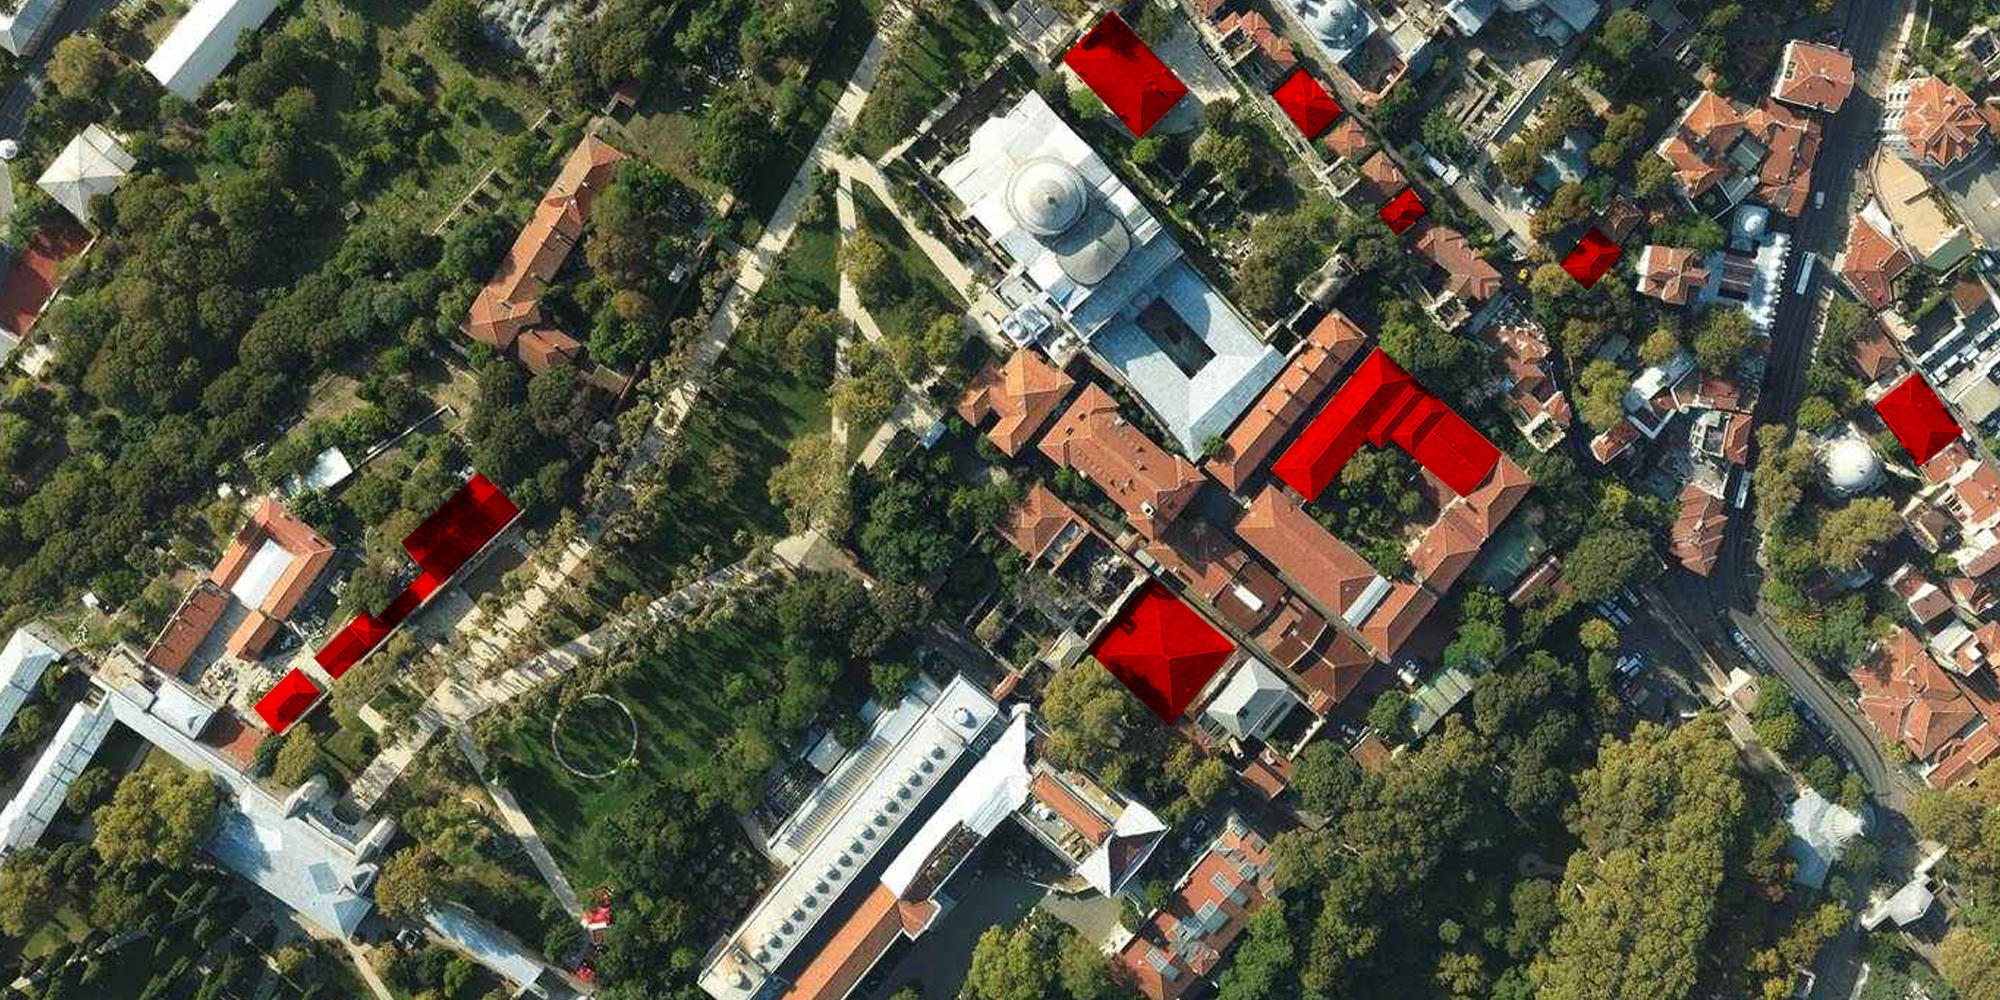 Advanced aerial imagery analysis with deep neural networks explained in 5 minutes